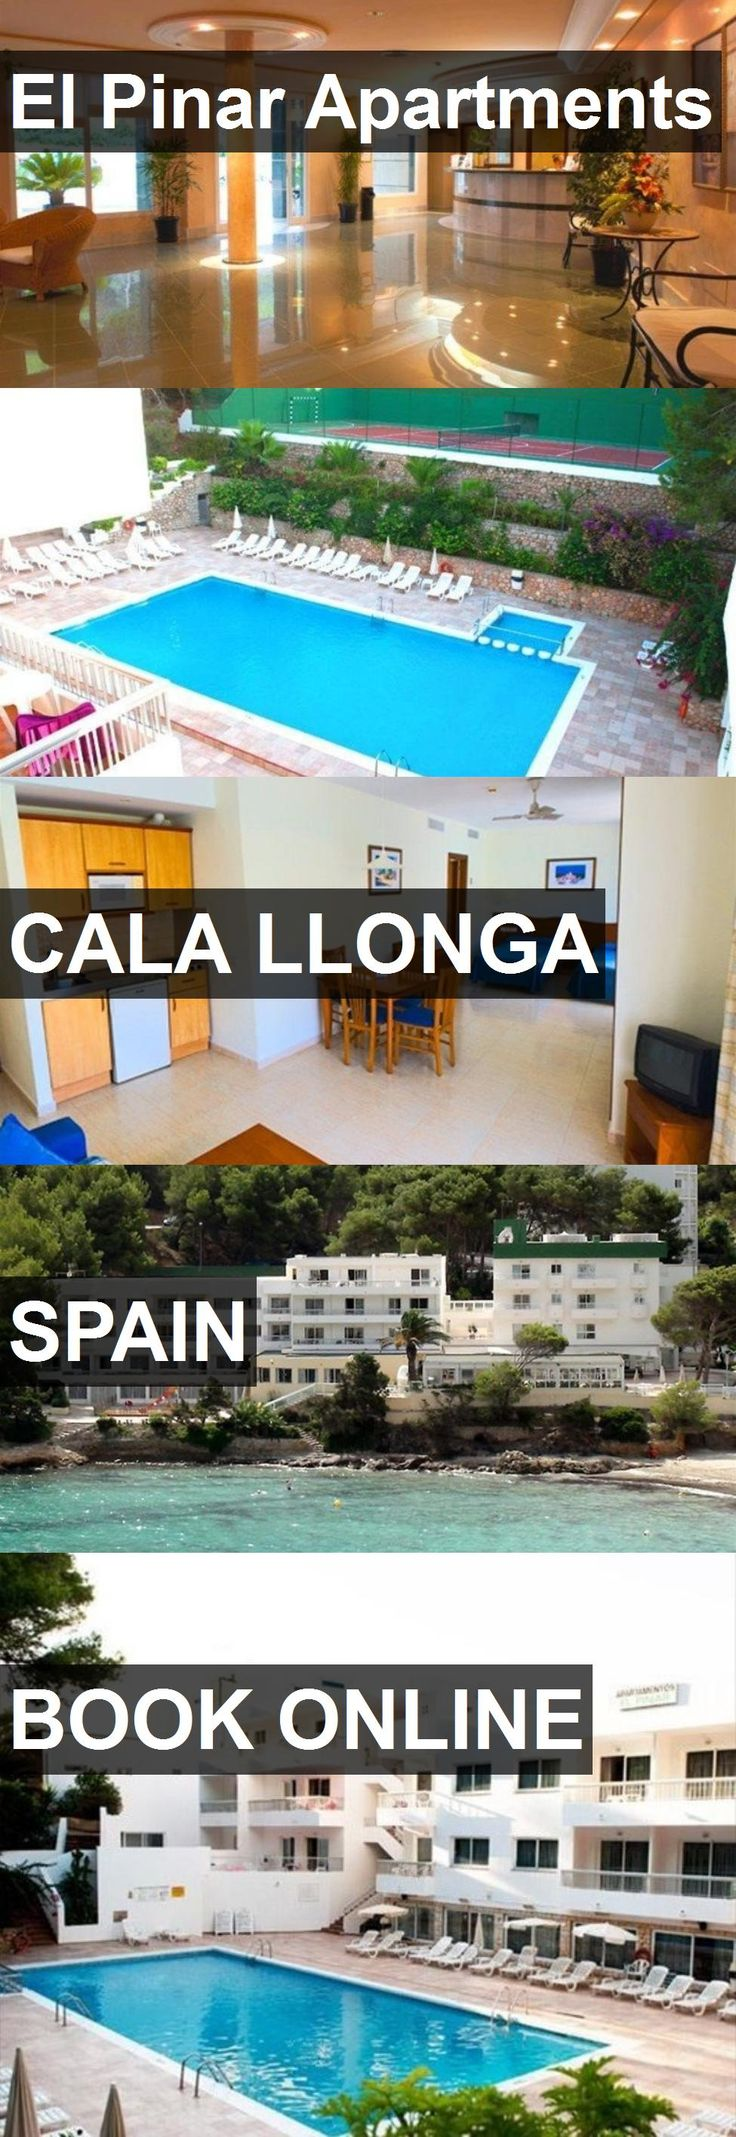 El Pinar Apartments in Cala Llonga, Spain. For more information, photos, reviews and best prices please follow the link. #Spain #CalaLlonga #travel #vacation #apartment